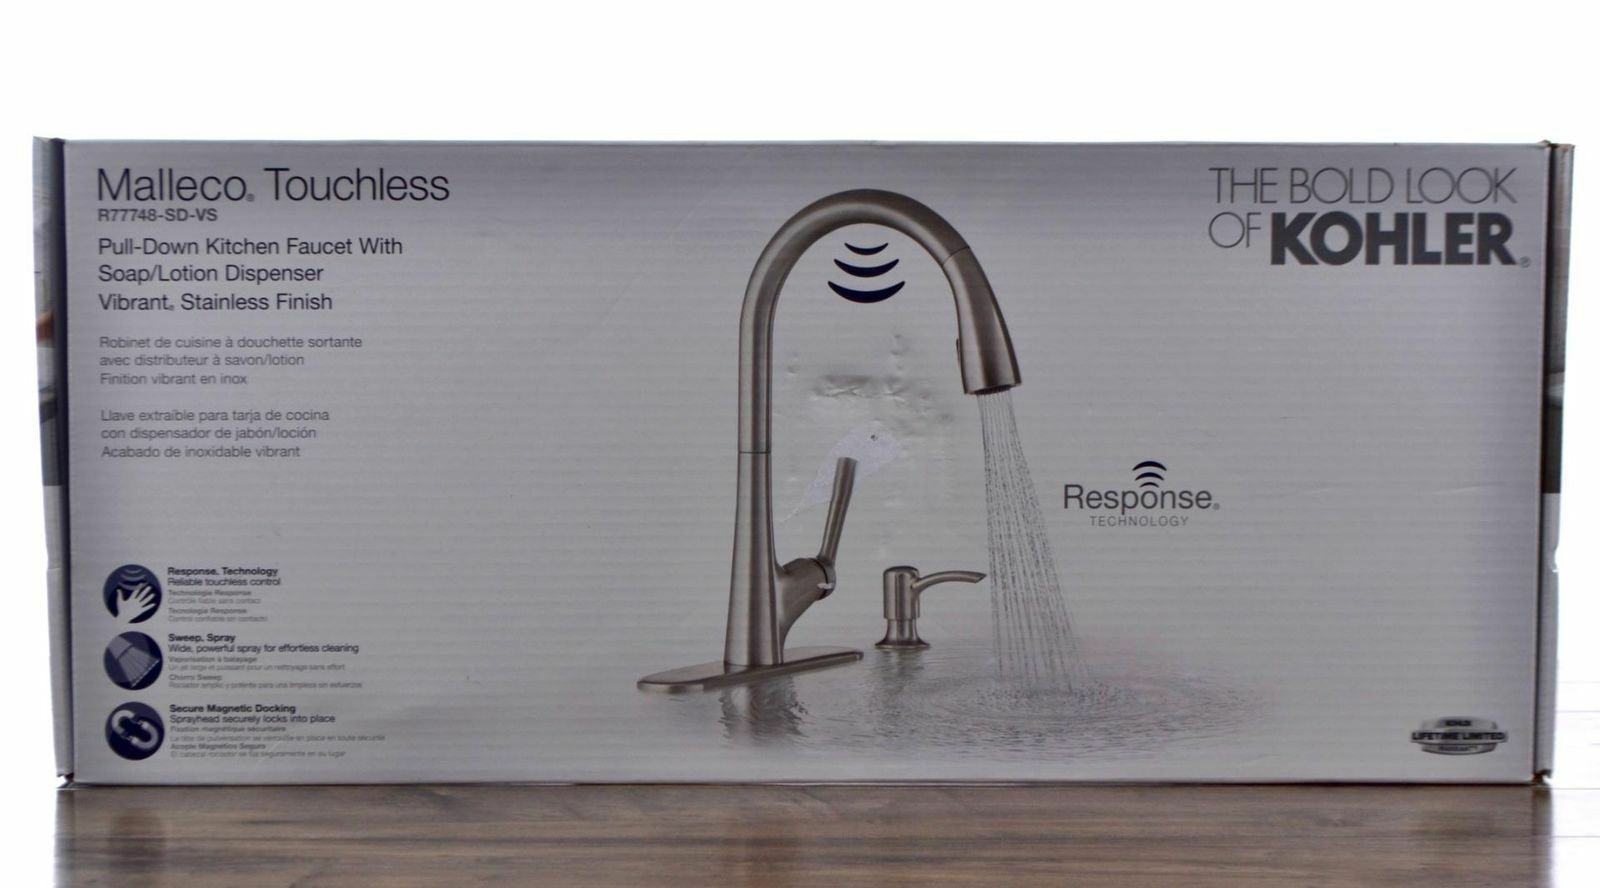 Kohler Malleco Touchless Kitchen Faucet R77748 Sd Vs